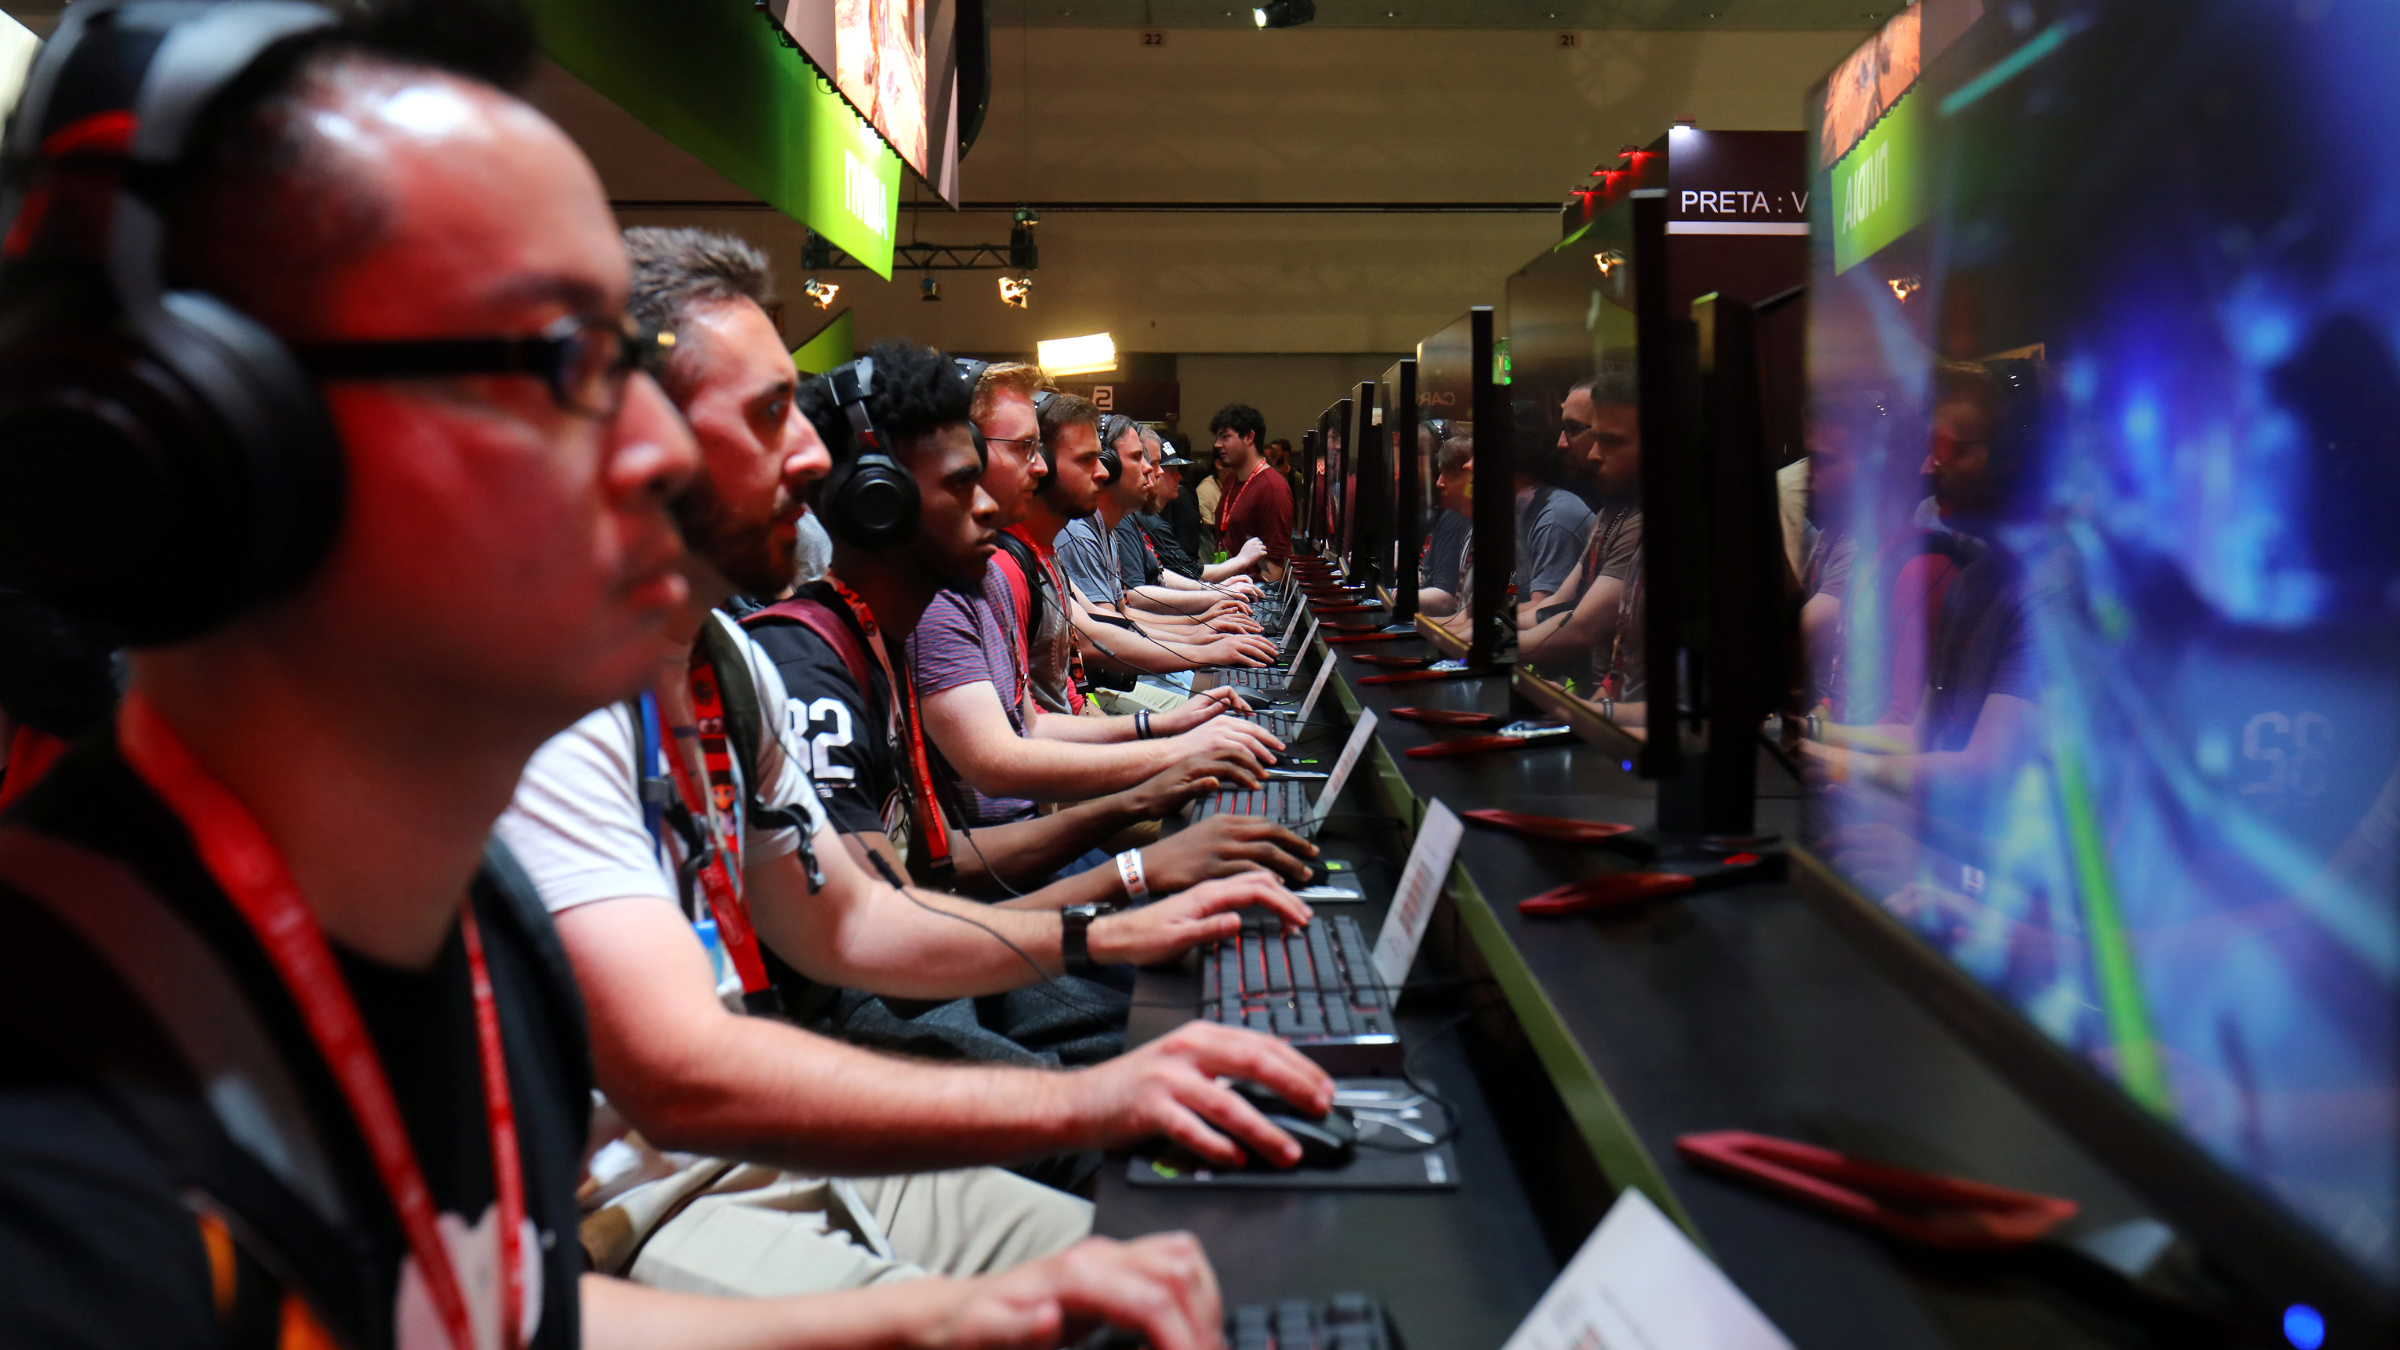 Attendees play video games at the E3 2017 Electronic Entertainment Expo in Los Angeles, California, U.S. June 13, 2017.